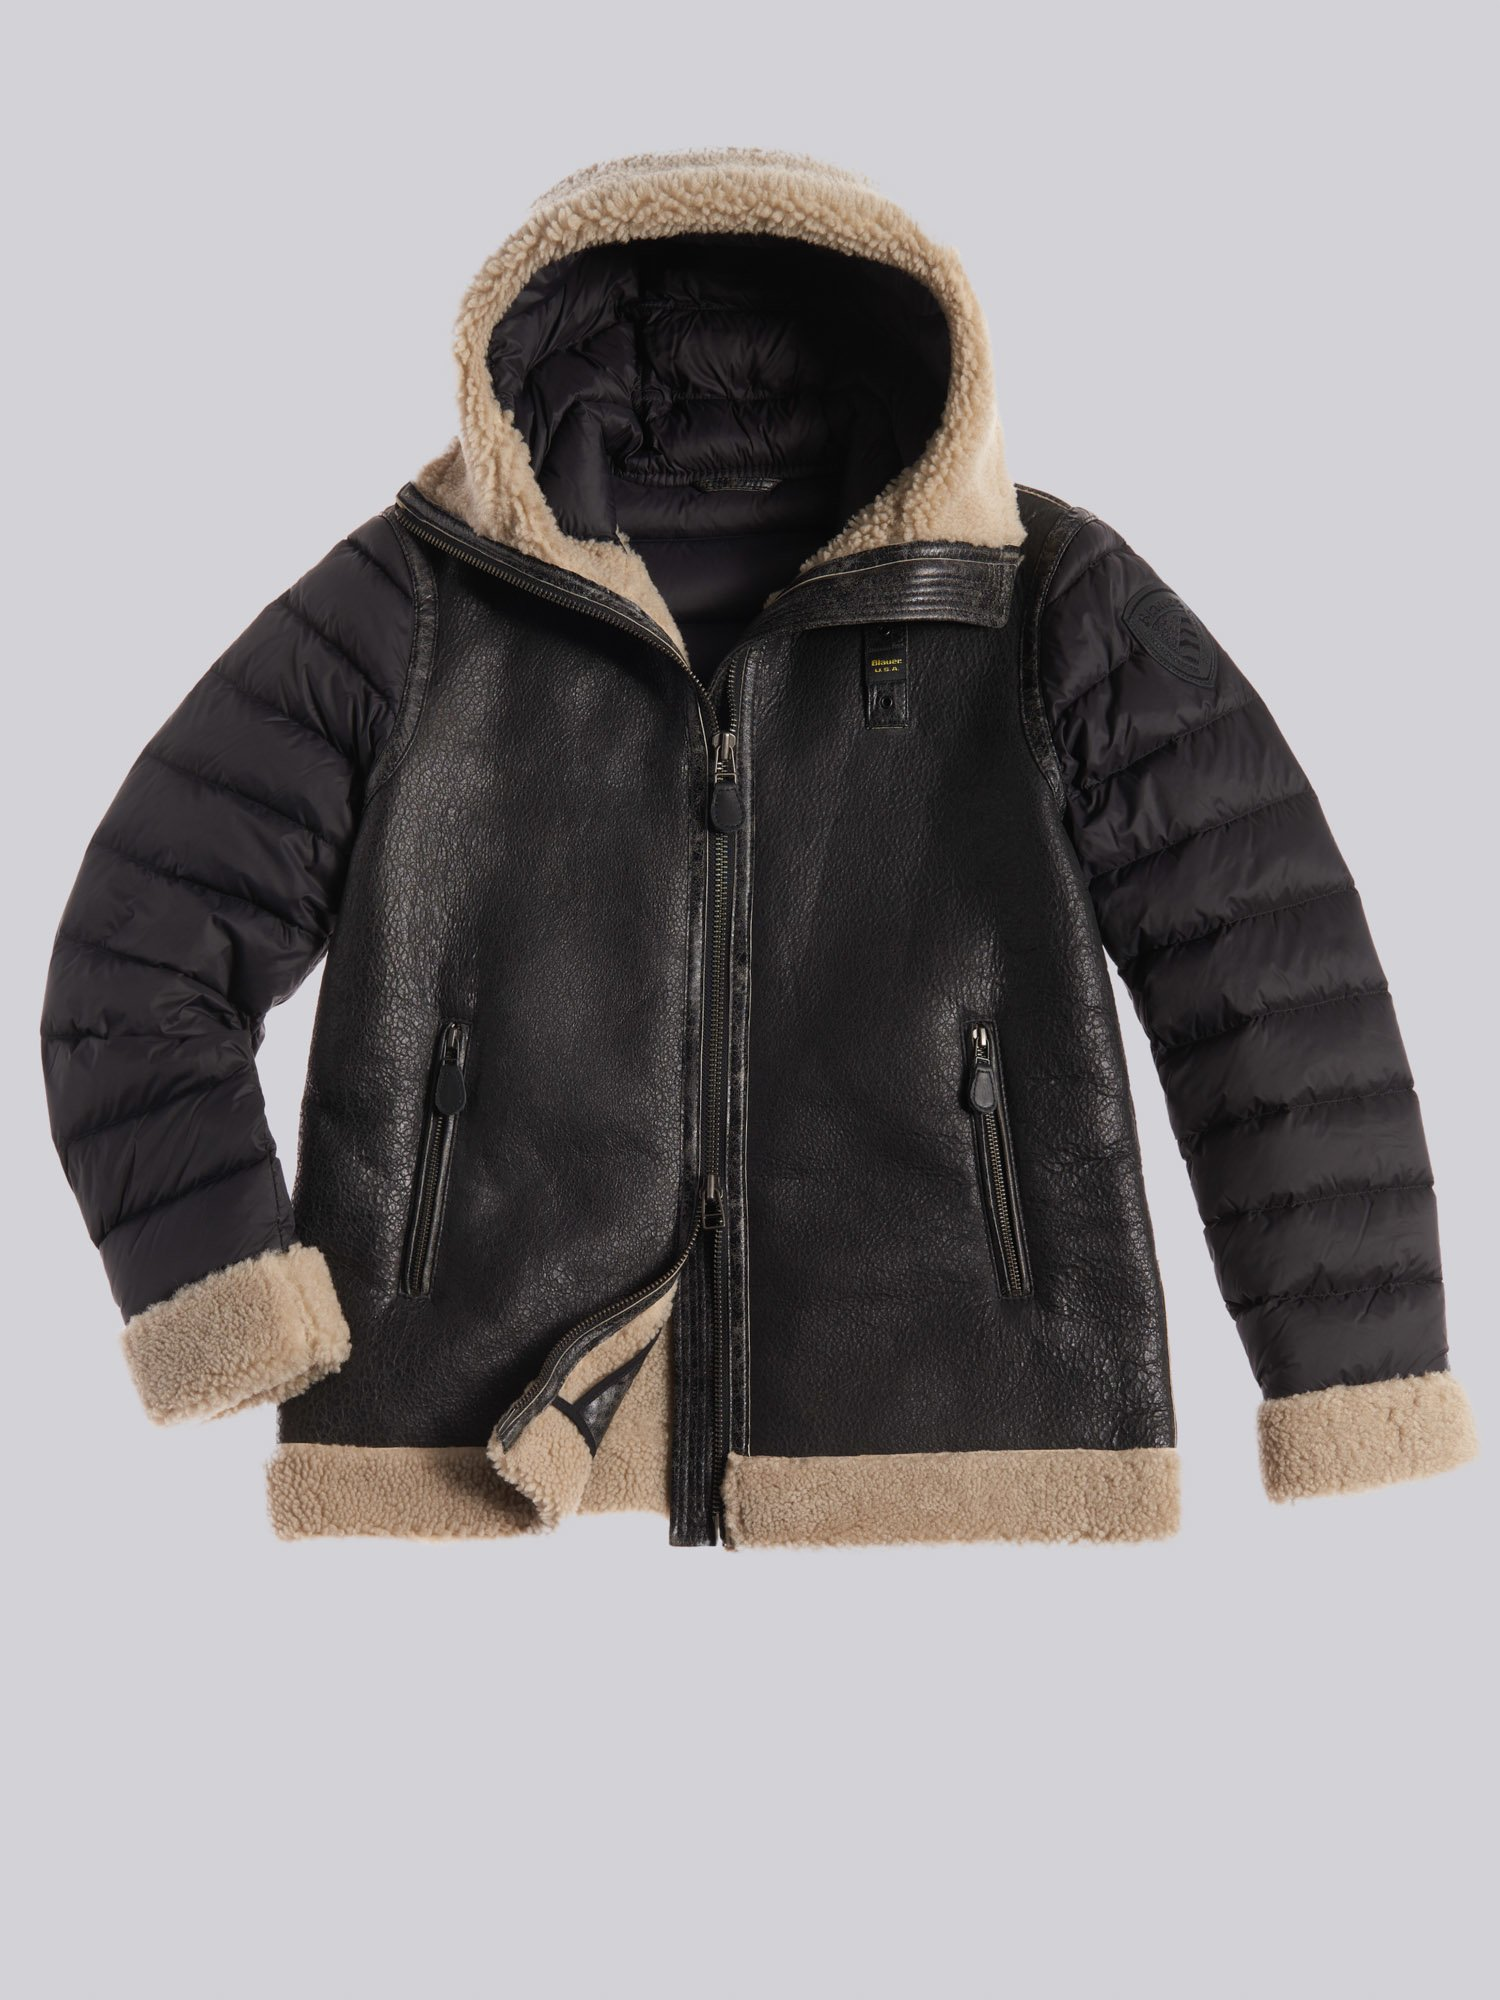 Blauer - LINDA SUEDE SHEARLING WITH HOOD - Black - Blauer